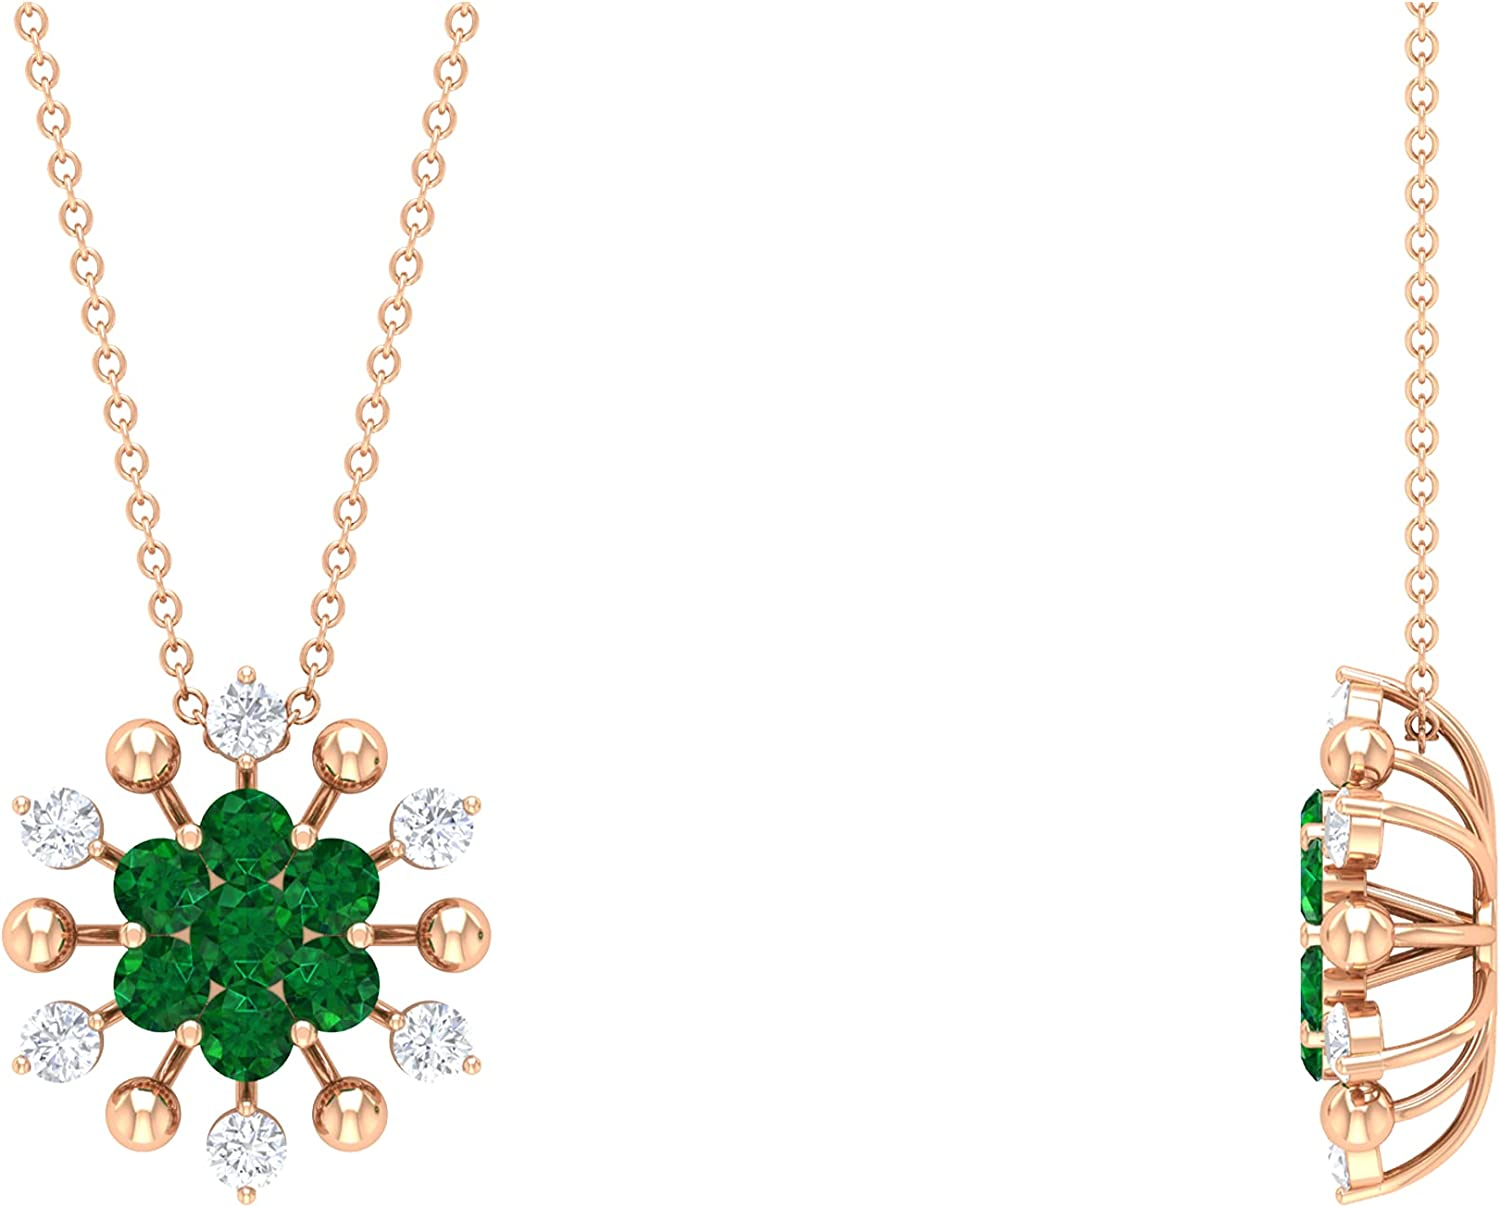 Overseas parallel import regular item 1.25 CT Created Emerald and High quality Neckl Cluster Floral Pendant Diamond